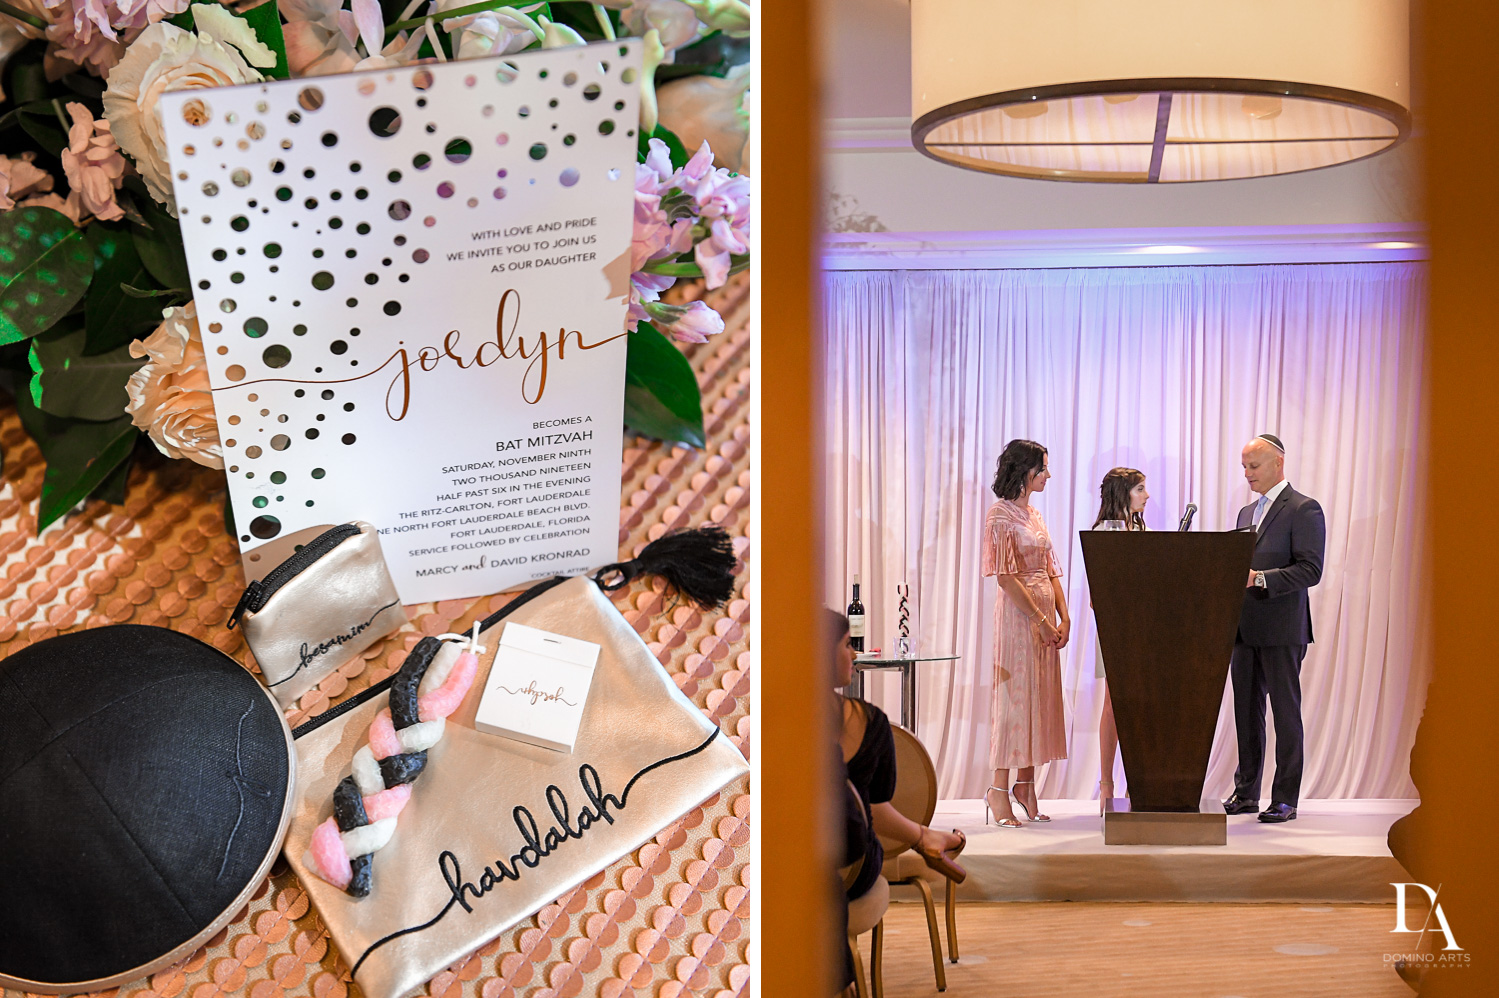 jewish traditions at Masquerade Ball Bat Mitzvah at Ritz Carlton Fort Lauderdale by Domino Arts Photography